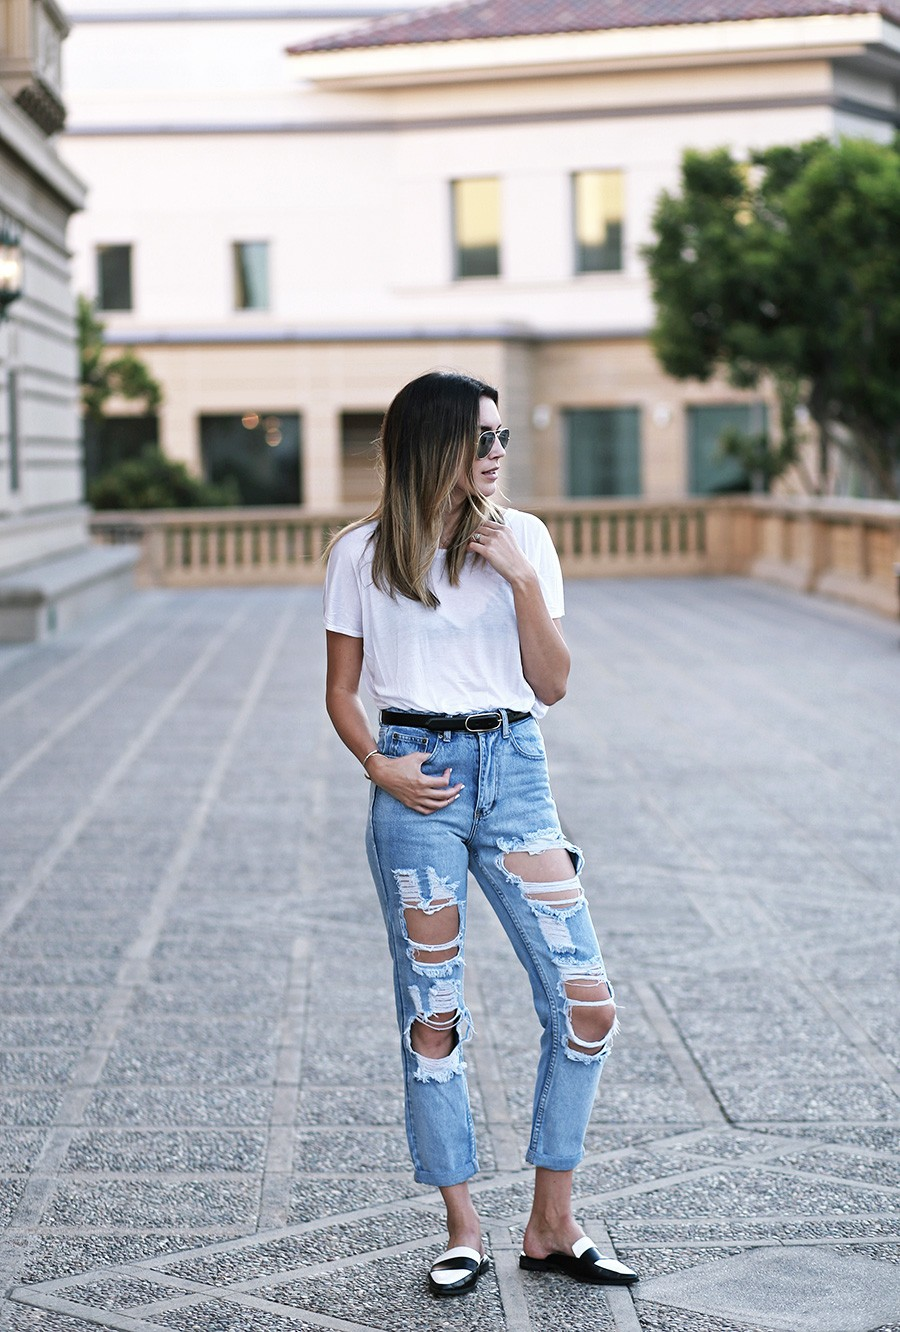 Ripped Jeans Outfits The Ripped And Distressed Jeans Are